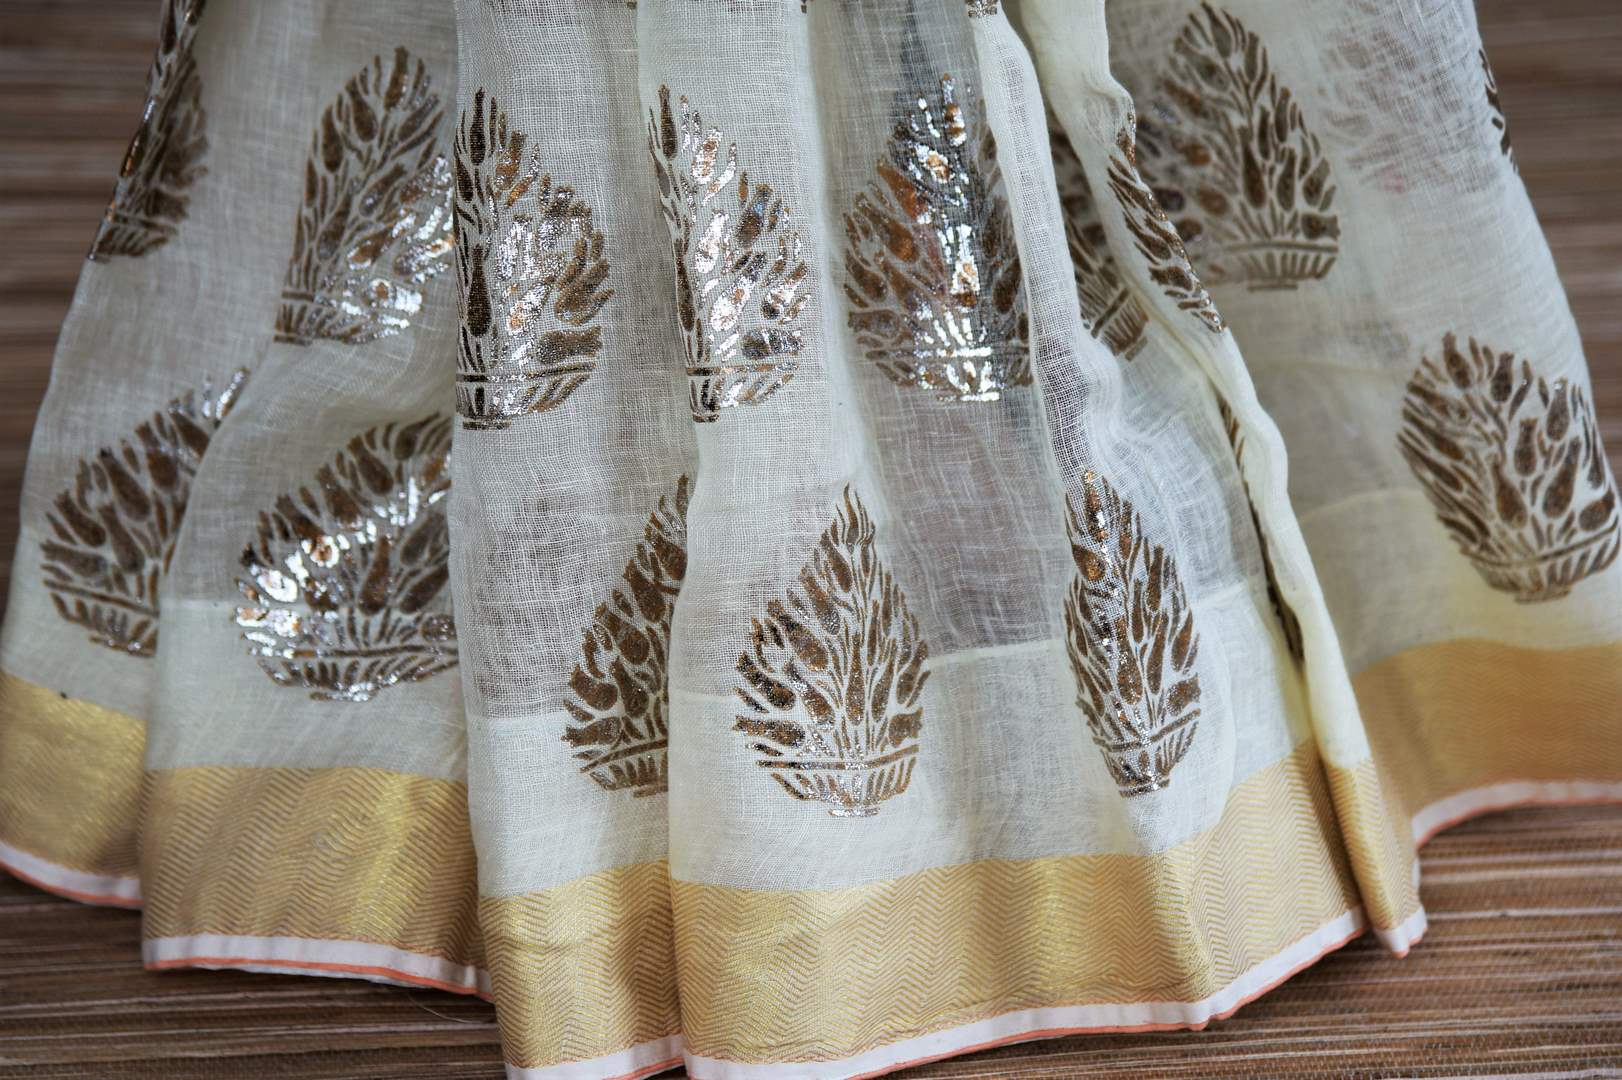 Buy cream linen sari online in USA with floral print and orange sari blouse. Select your favorite Indian sarees, pure silk sarees, wedding sarees from Pure Elegance Indian fashion store in USA for weddings and special occasions.-pleats